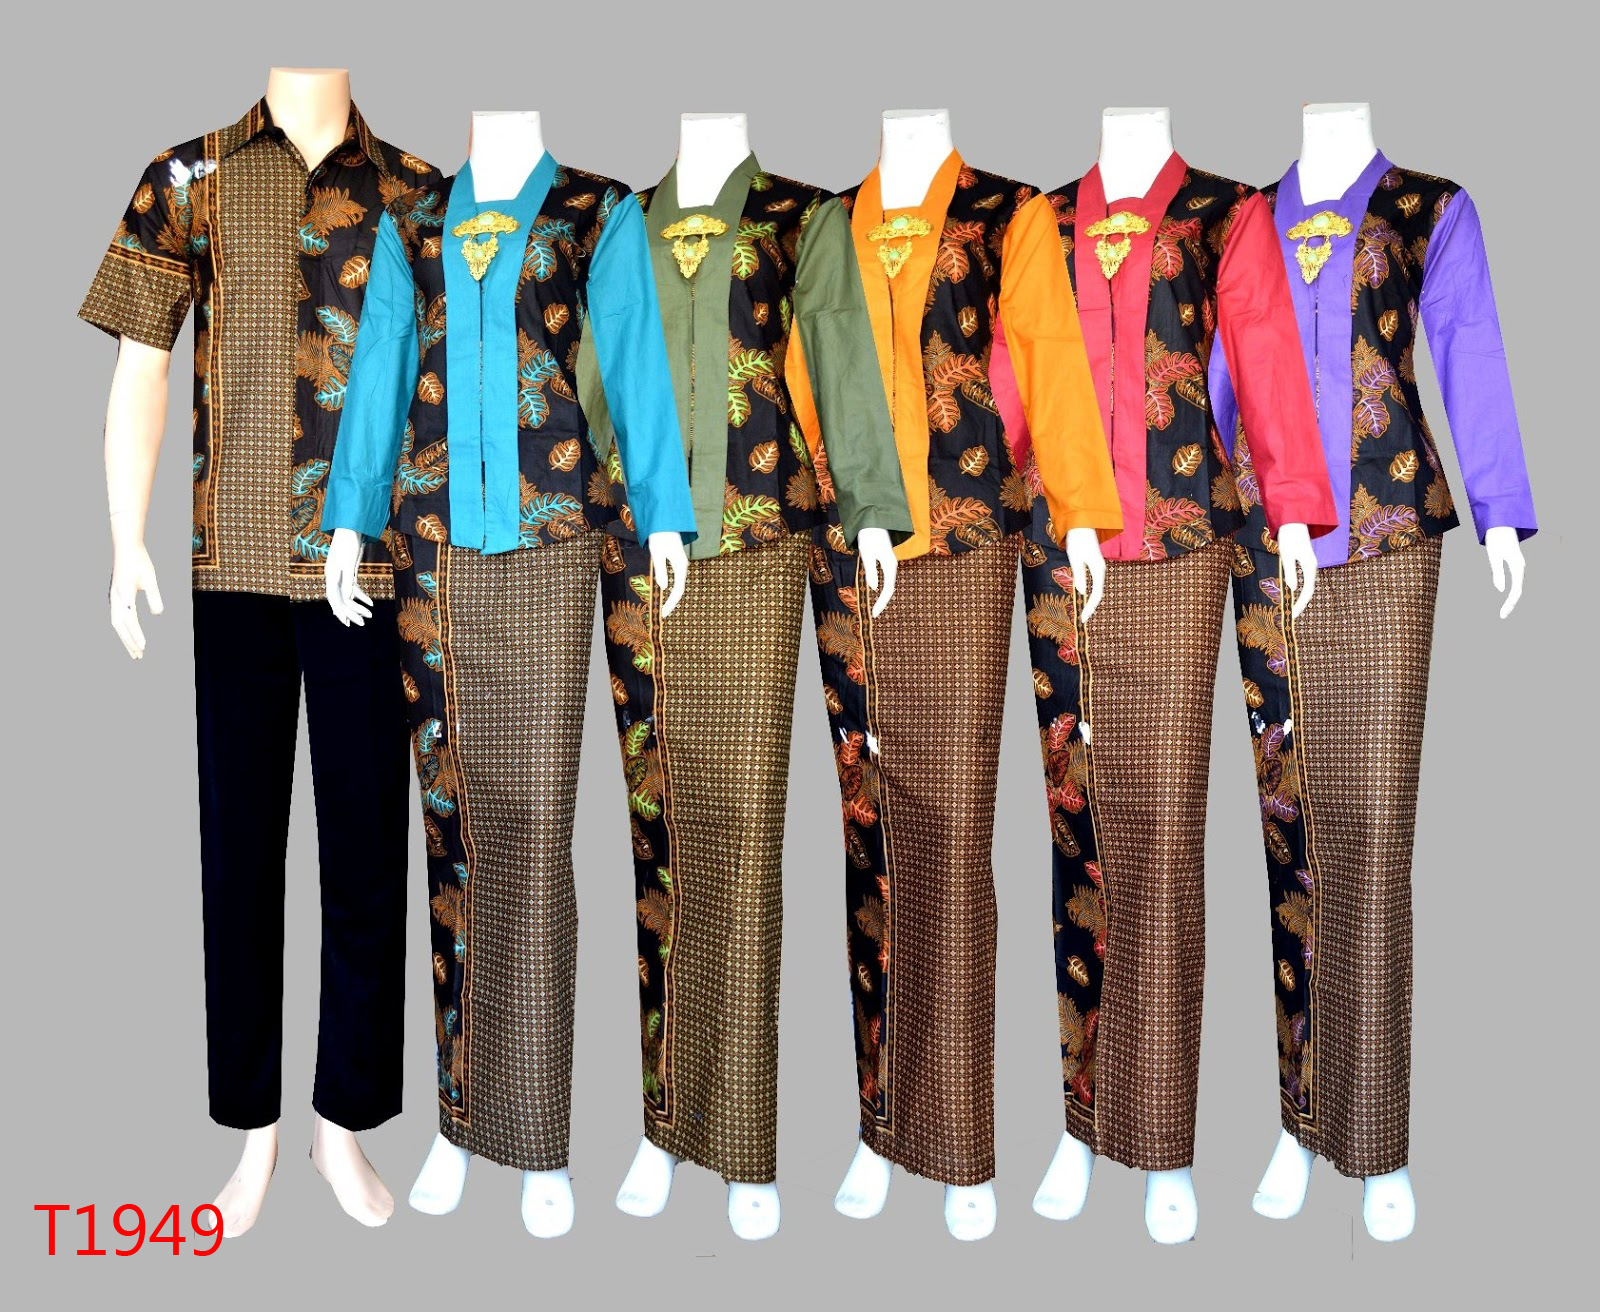 Jual Dress Batik Couple Murah Baju Gamis Batik Couple